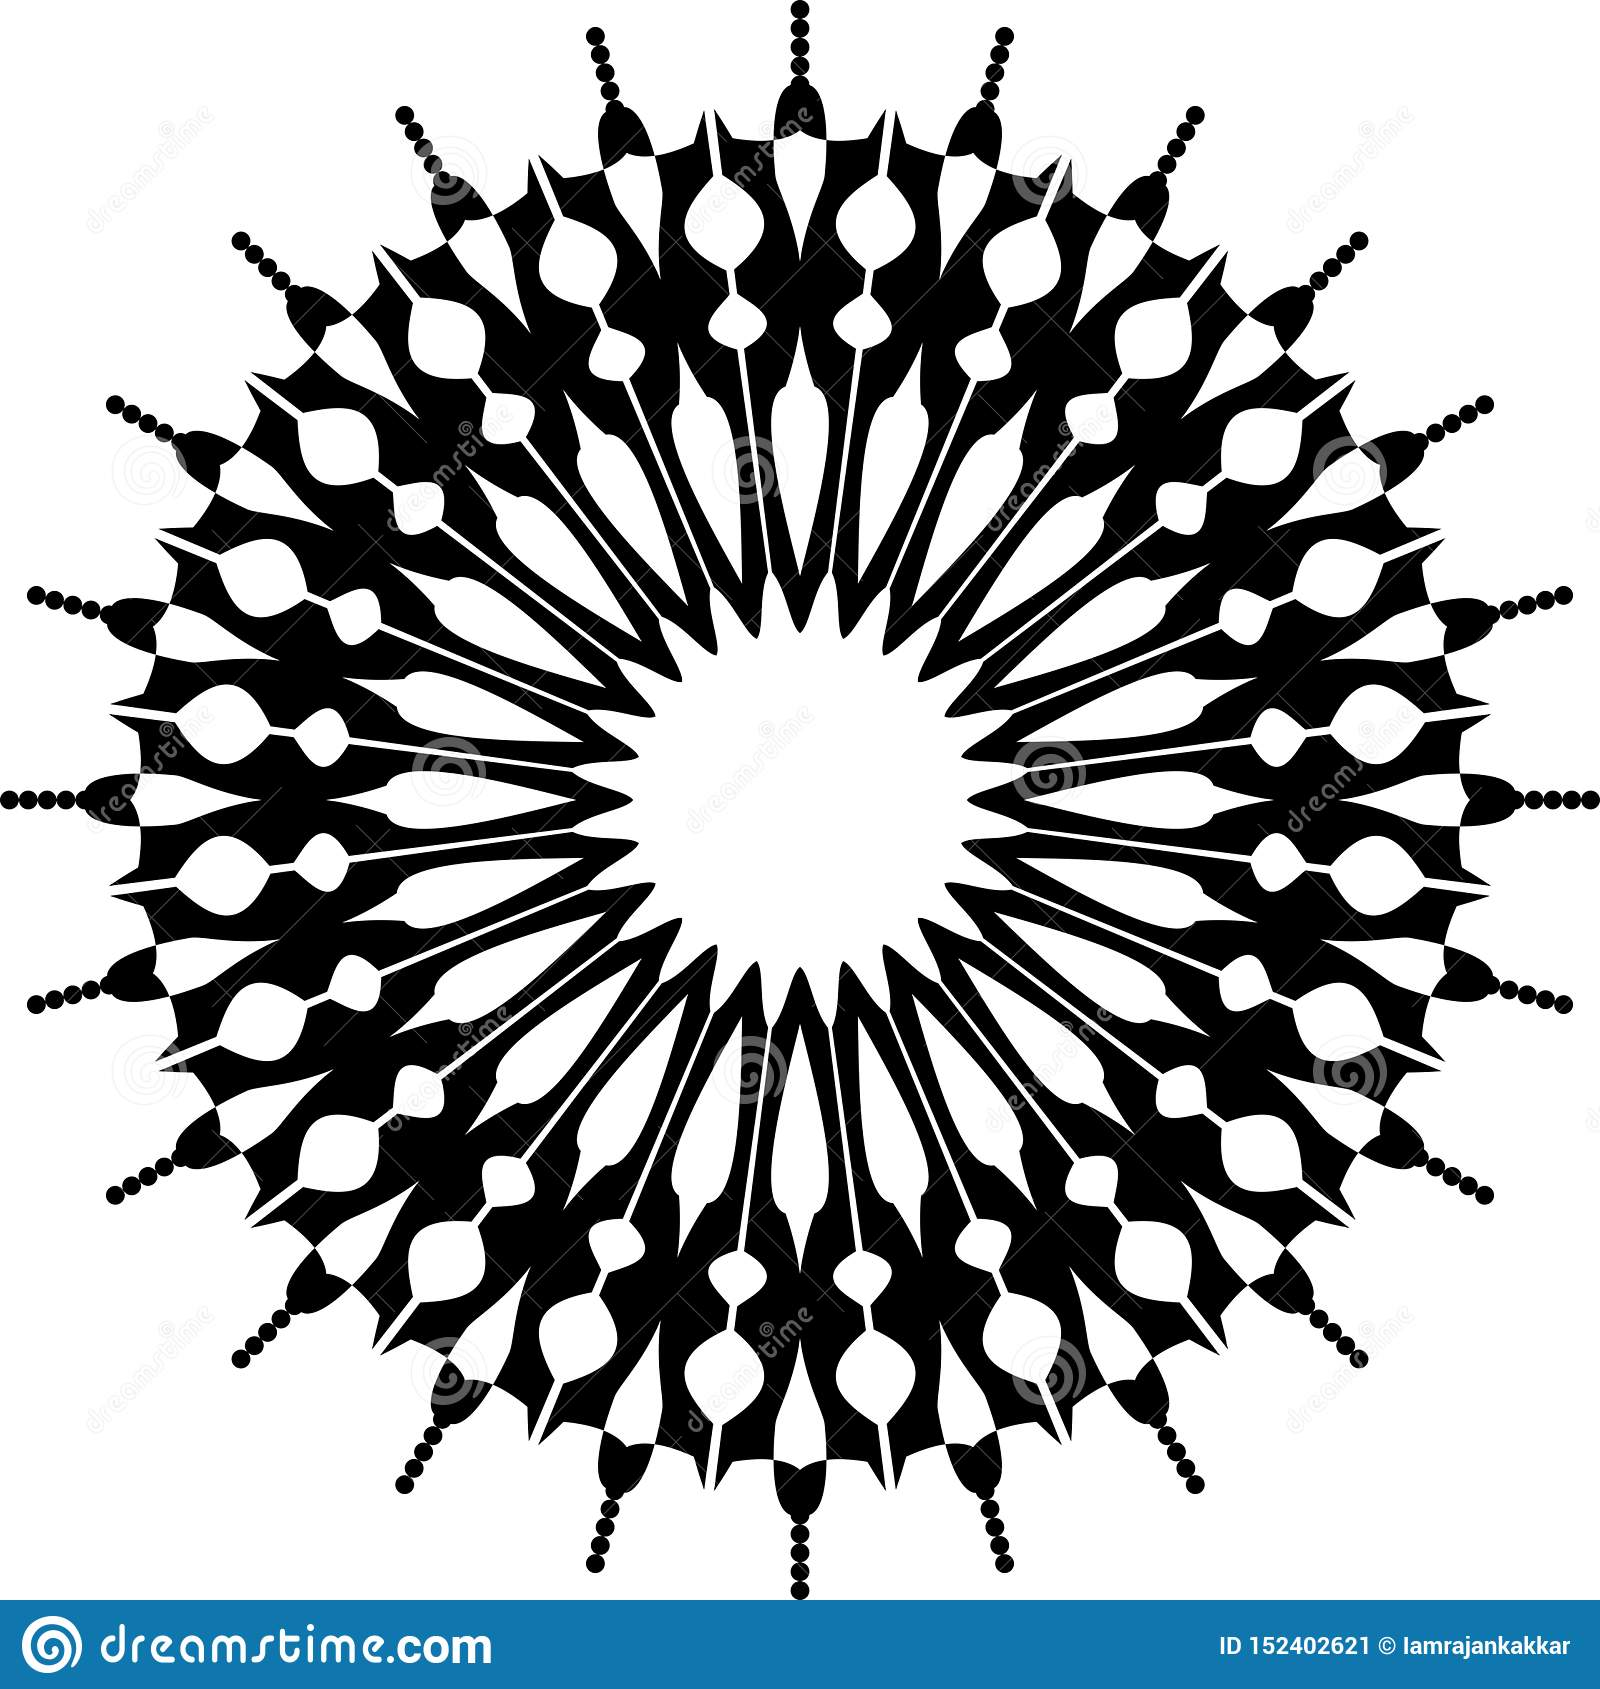 Black And White Mandala Background And Wallpaper Design Stock Vector Illustration Of Abstract Colorful 152402621